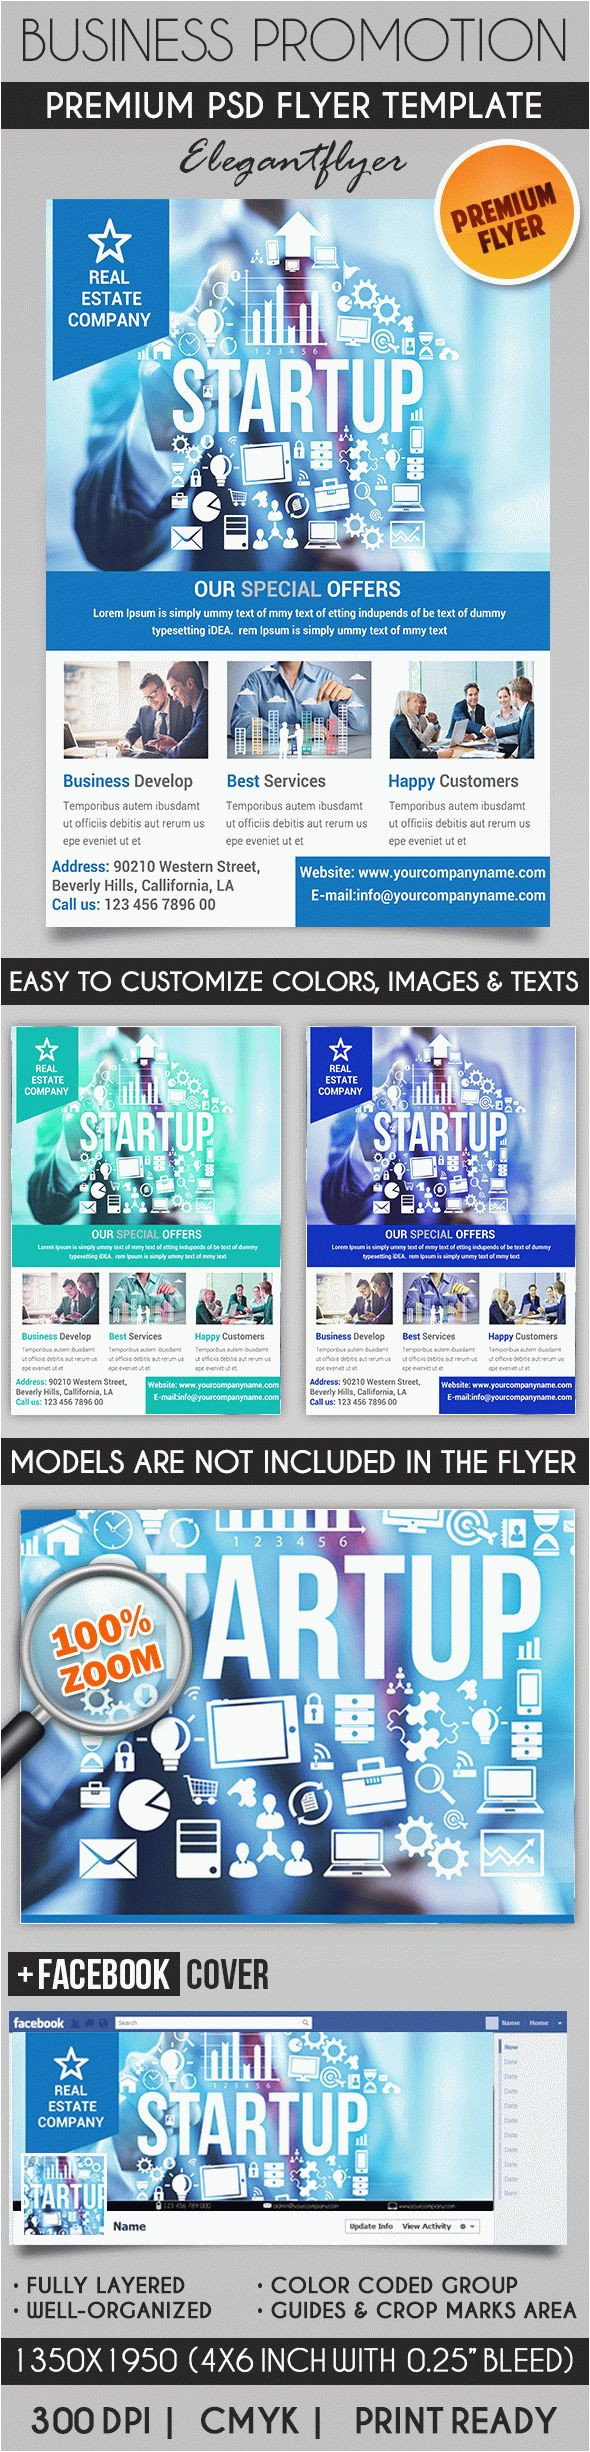 business promotion flyer psd template facebook cover